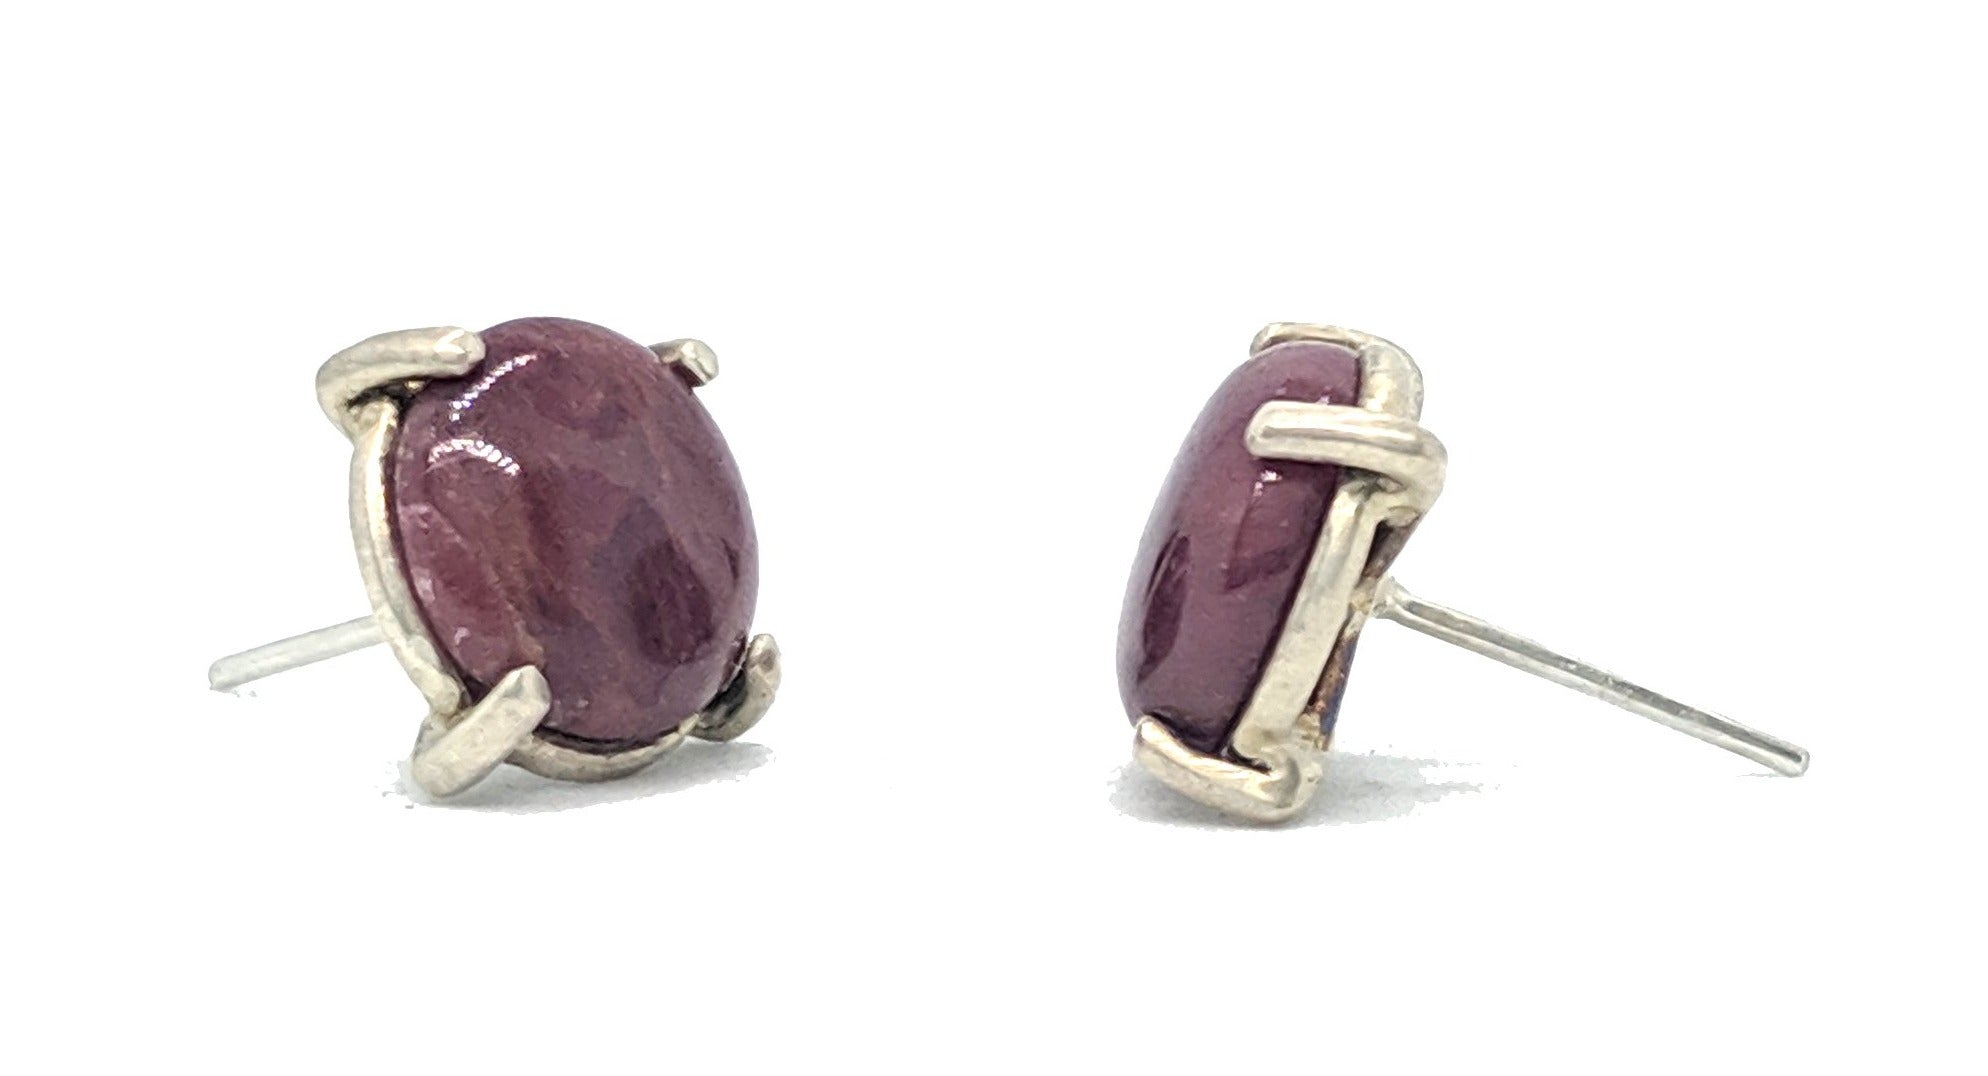 Christine Bossler Stud Earrings - Sterling Silver + Ruby Cabochon, Christine Bossler, Handcrafted Home Goods and Gifts